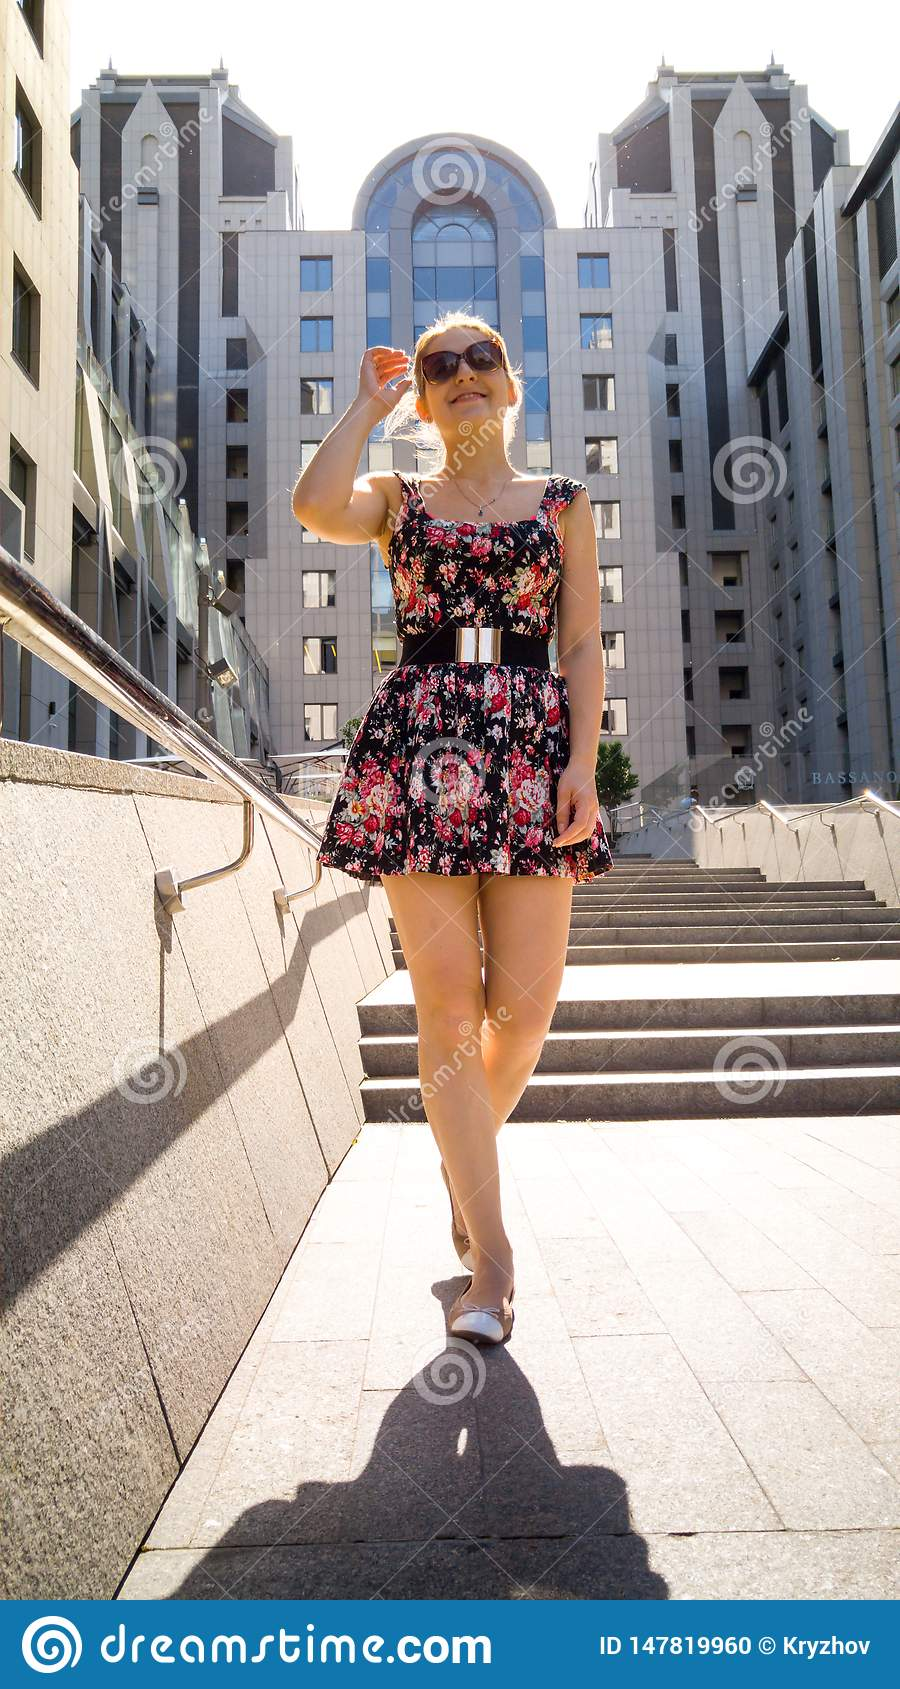 2cc419ee1d15 Portrait of sexy woman in short dress posing against modern building made  of concrete and glass in sun light rays